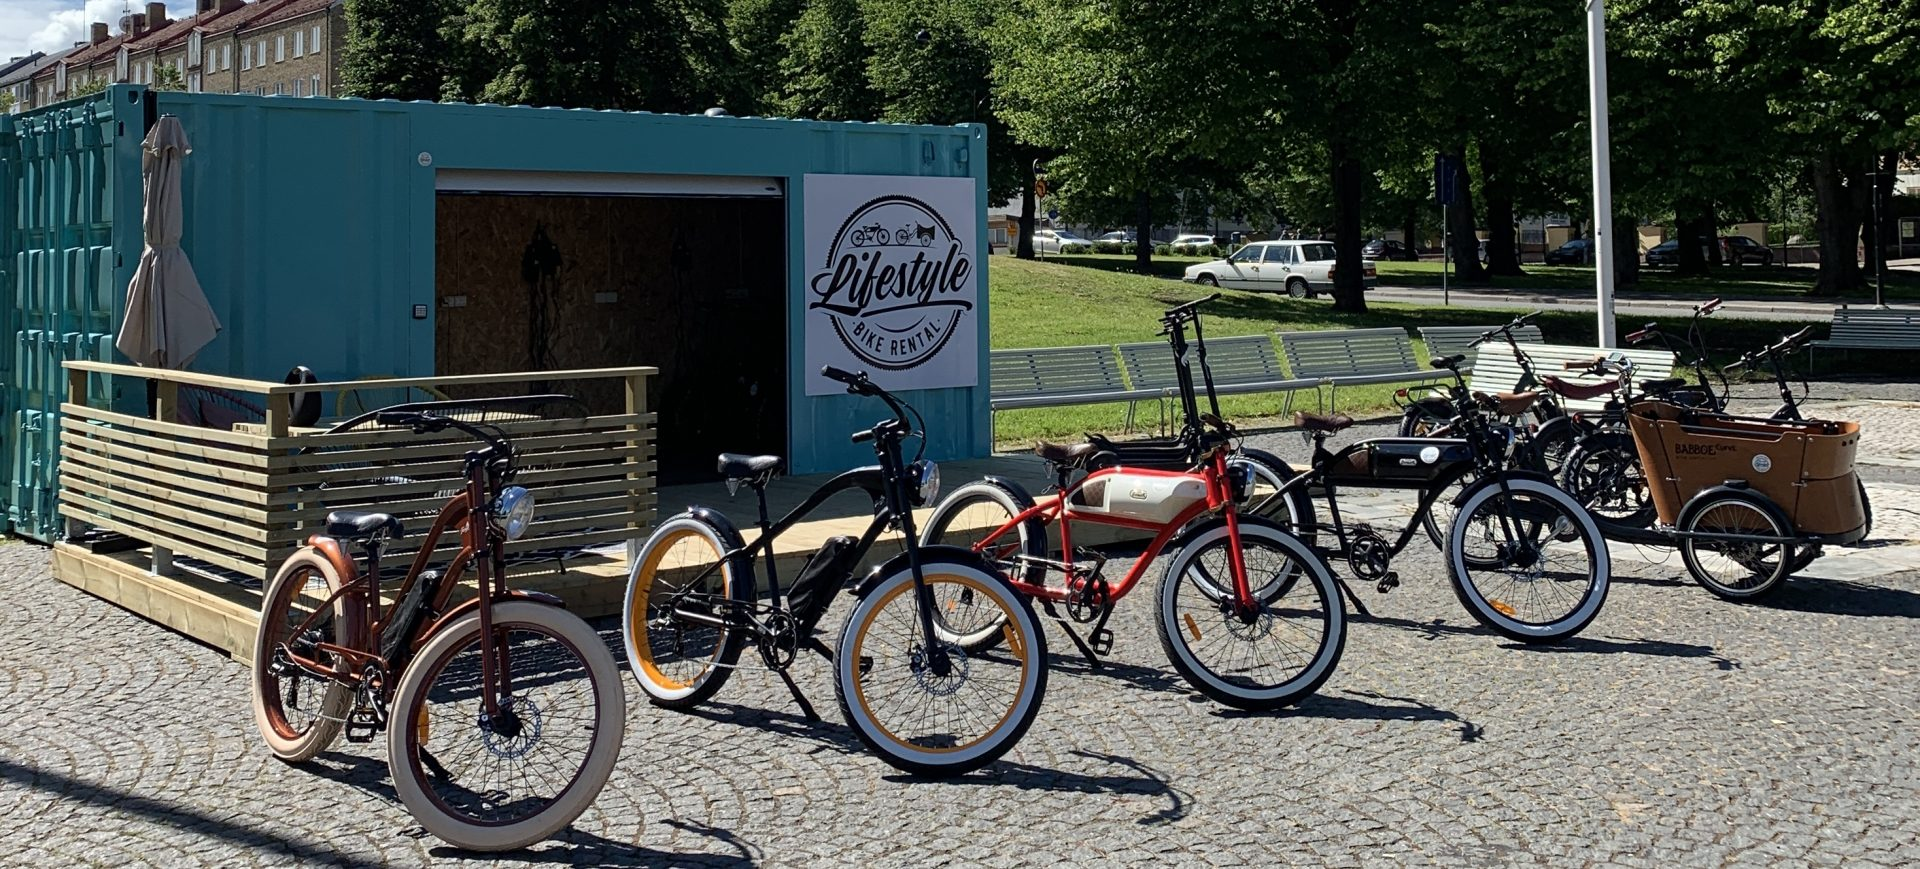 Lifestyle bike rental